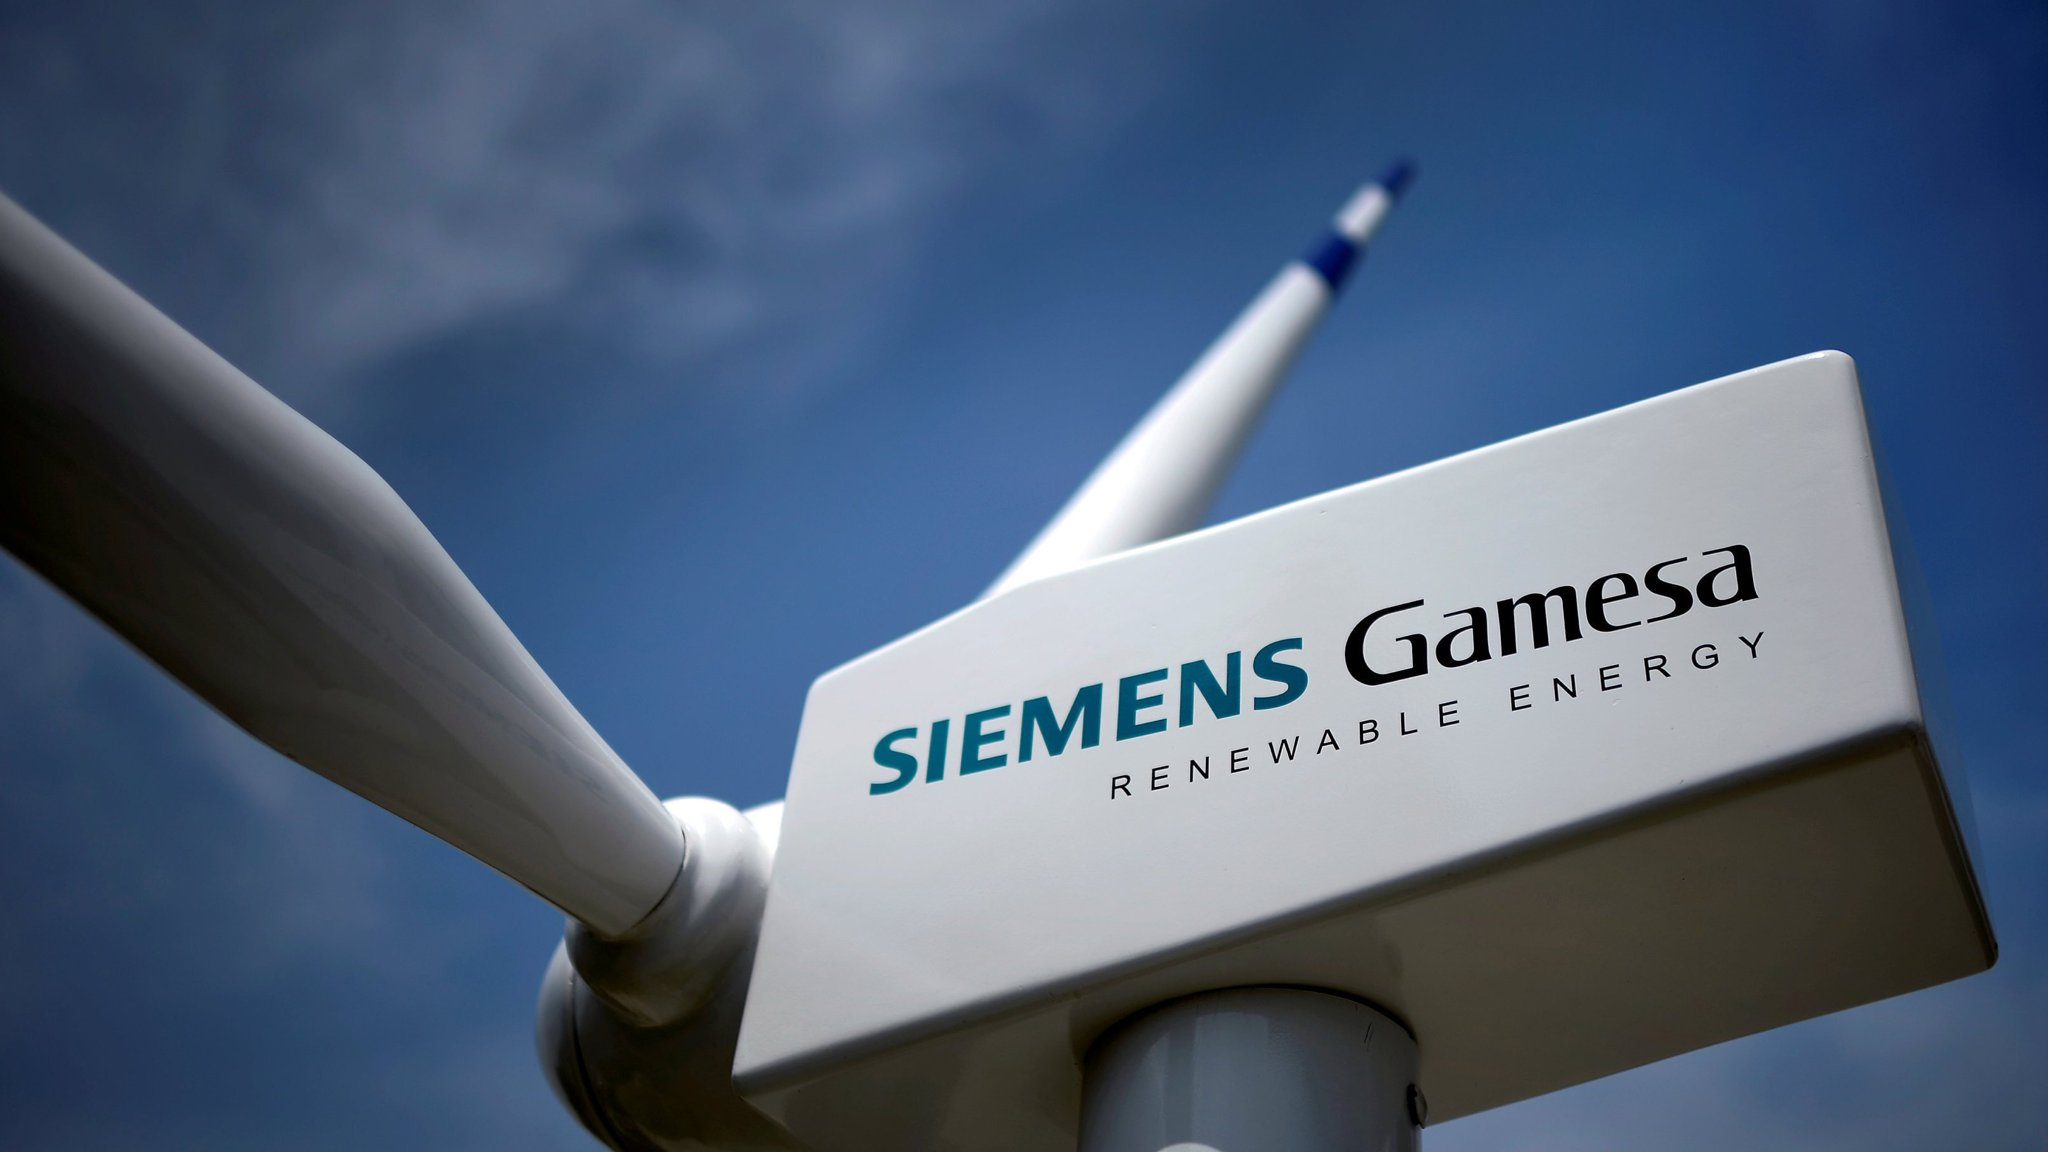 Turbine maker Siemens Gamesa to cut 6,000 jobs | Financial Times